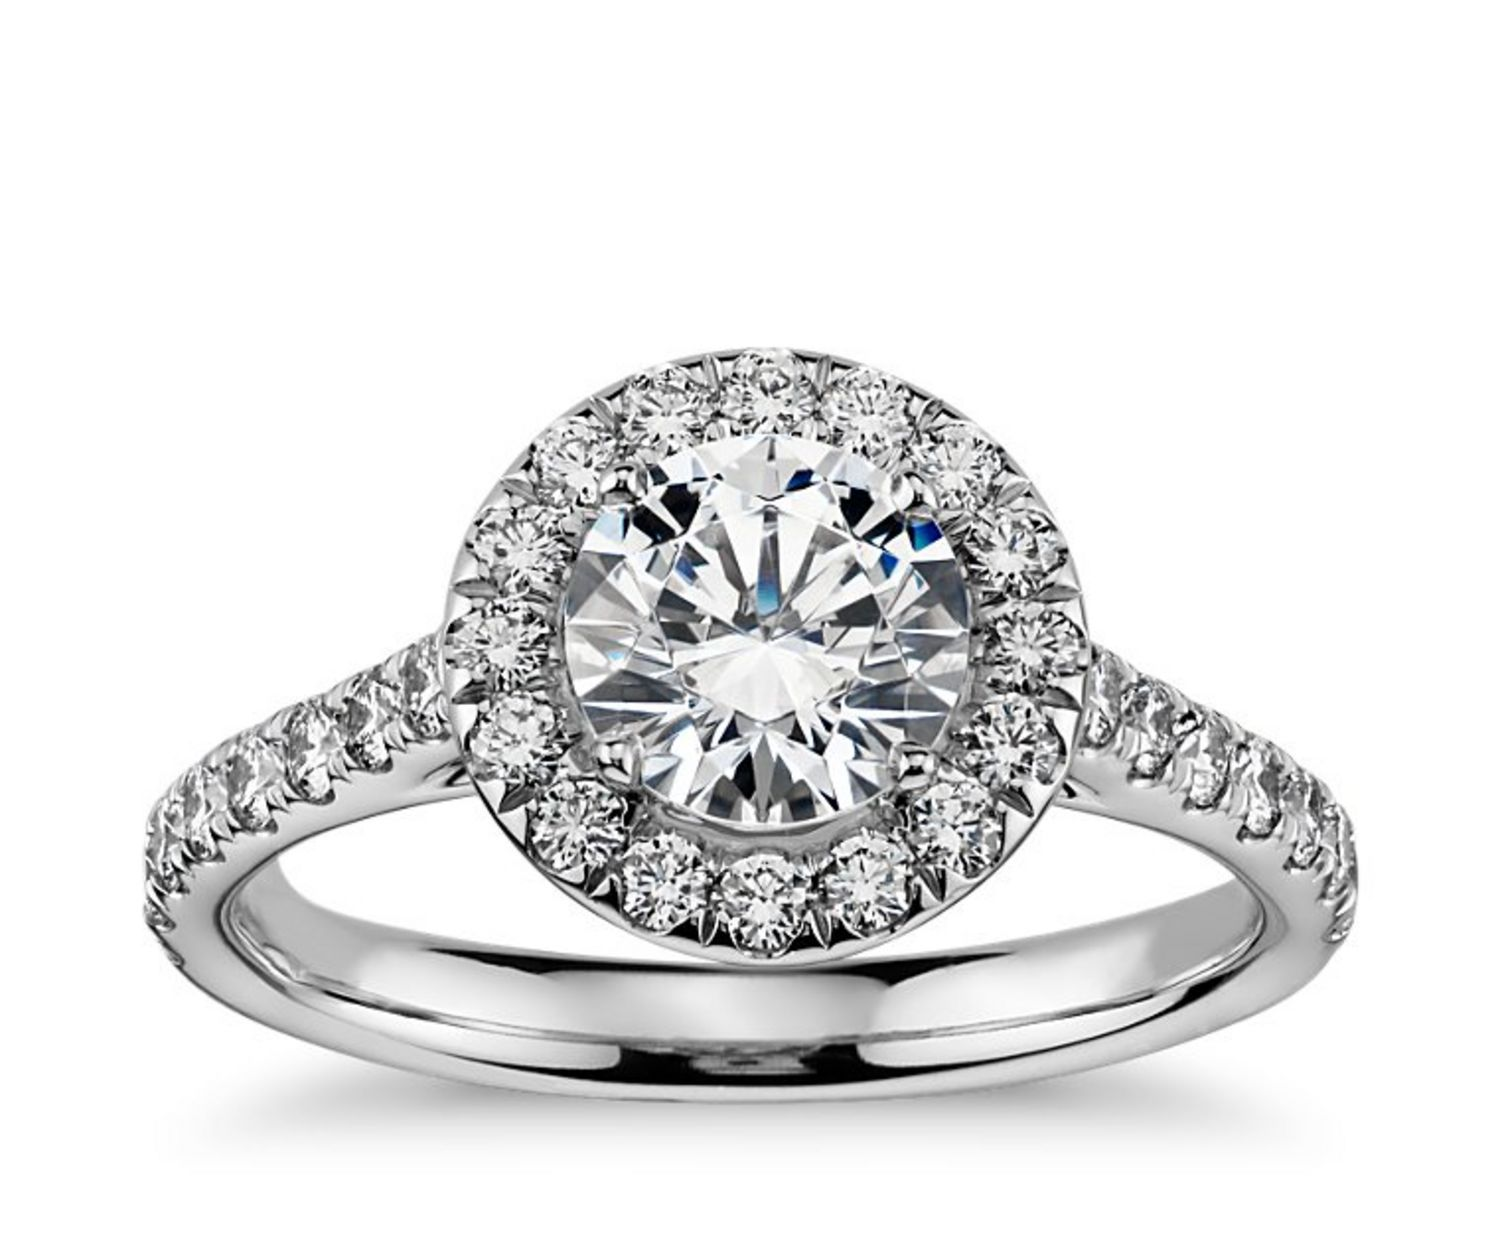 most popular wedding ring styles posts related to most common engagement rings - Wedding Ring Prices